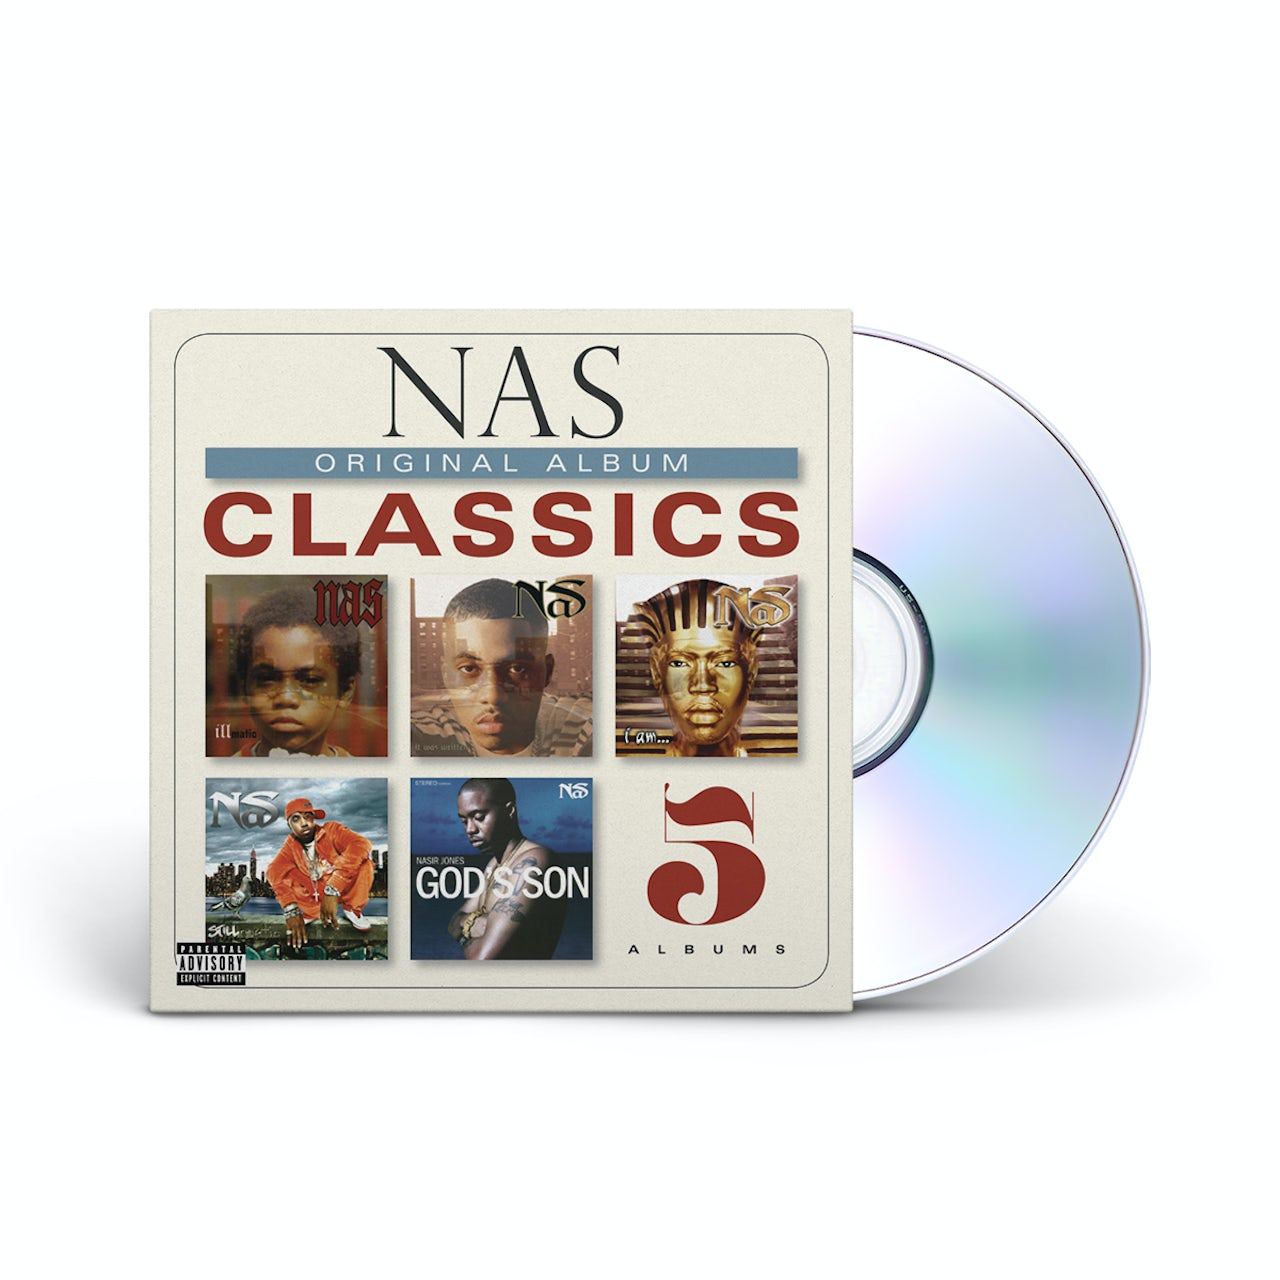 Nas: Original Album Classics CD